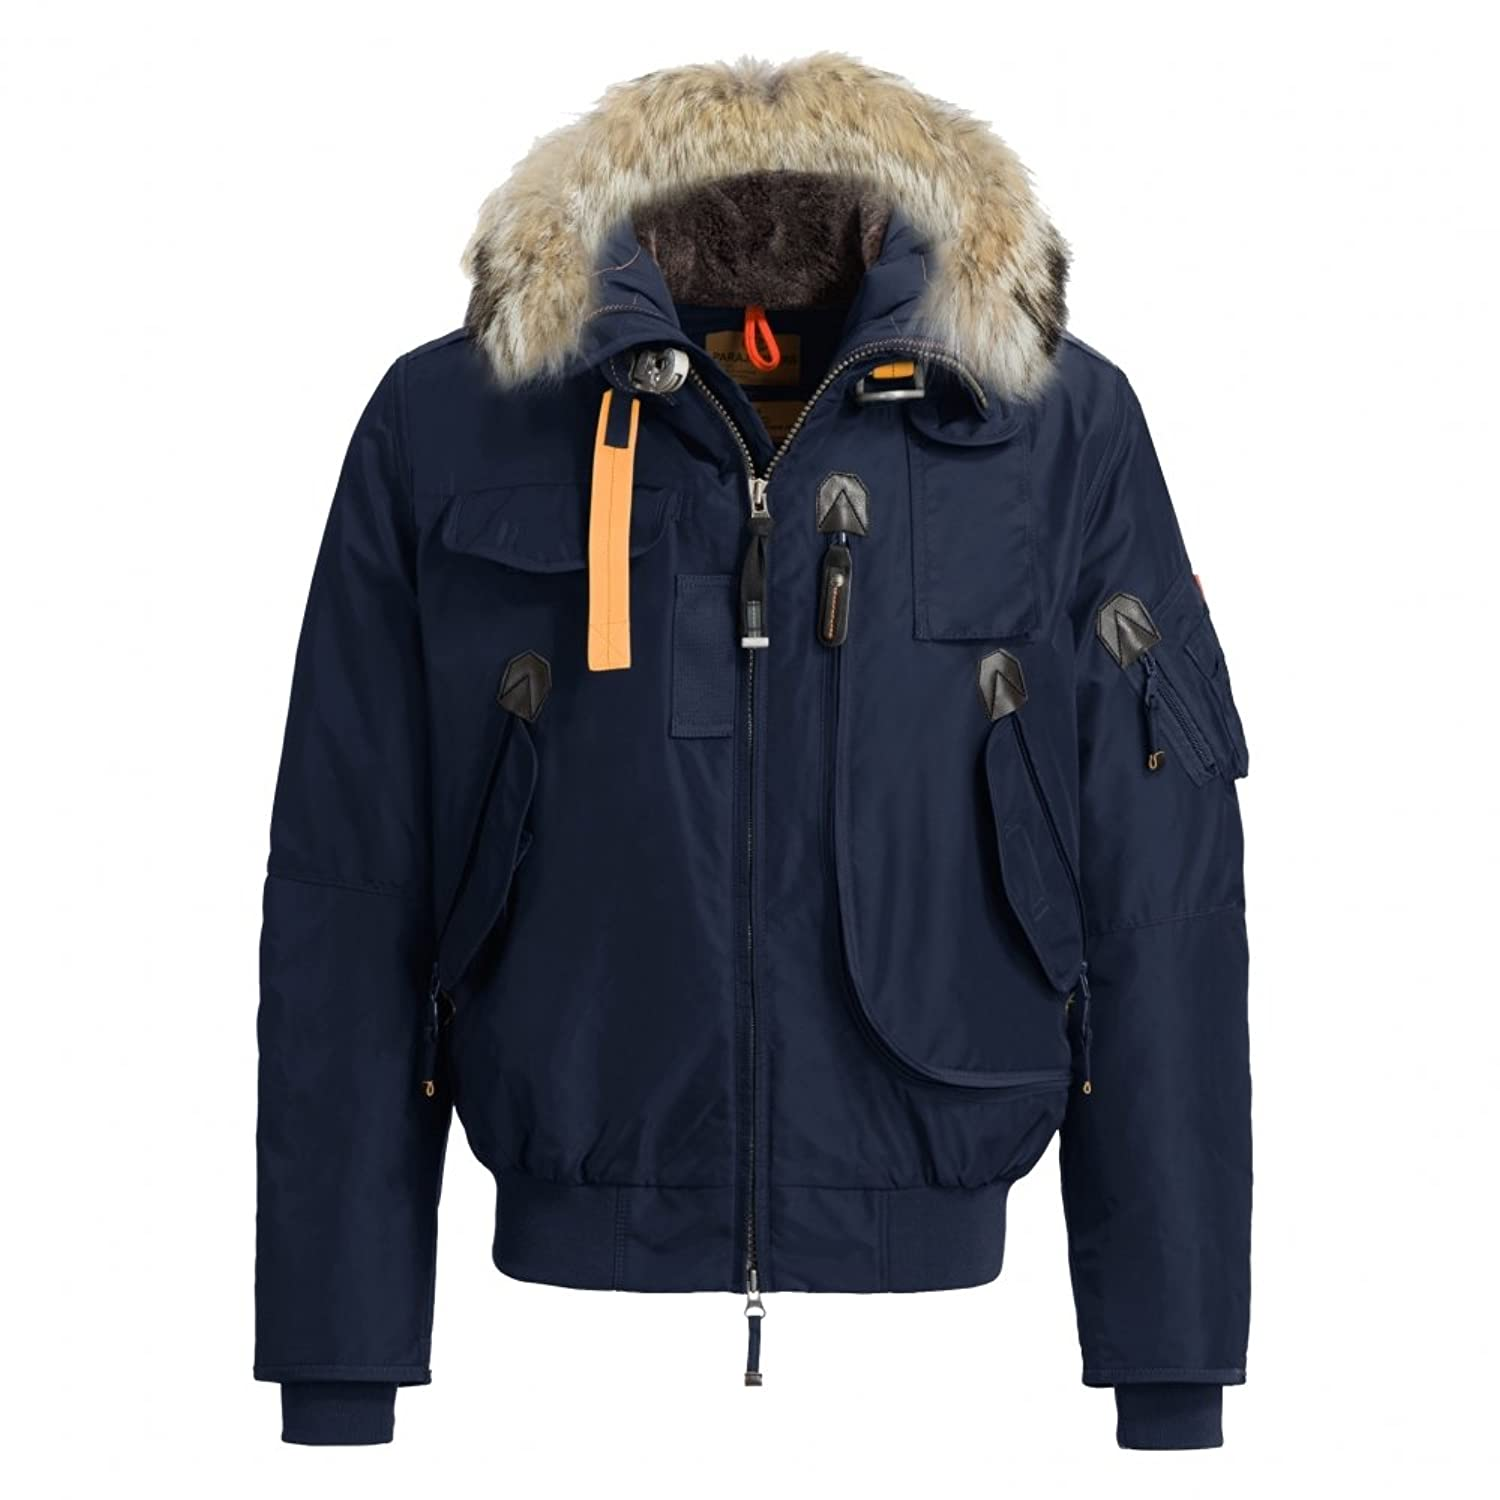 Parajumpers Gobi Bomber Jacket in Marine